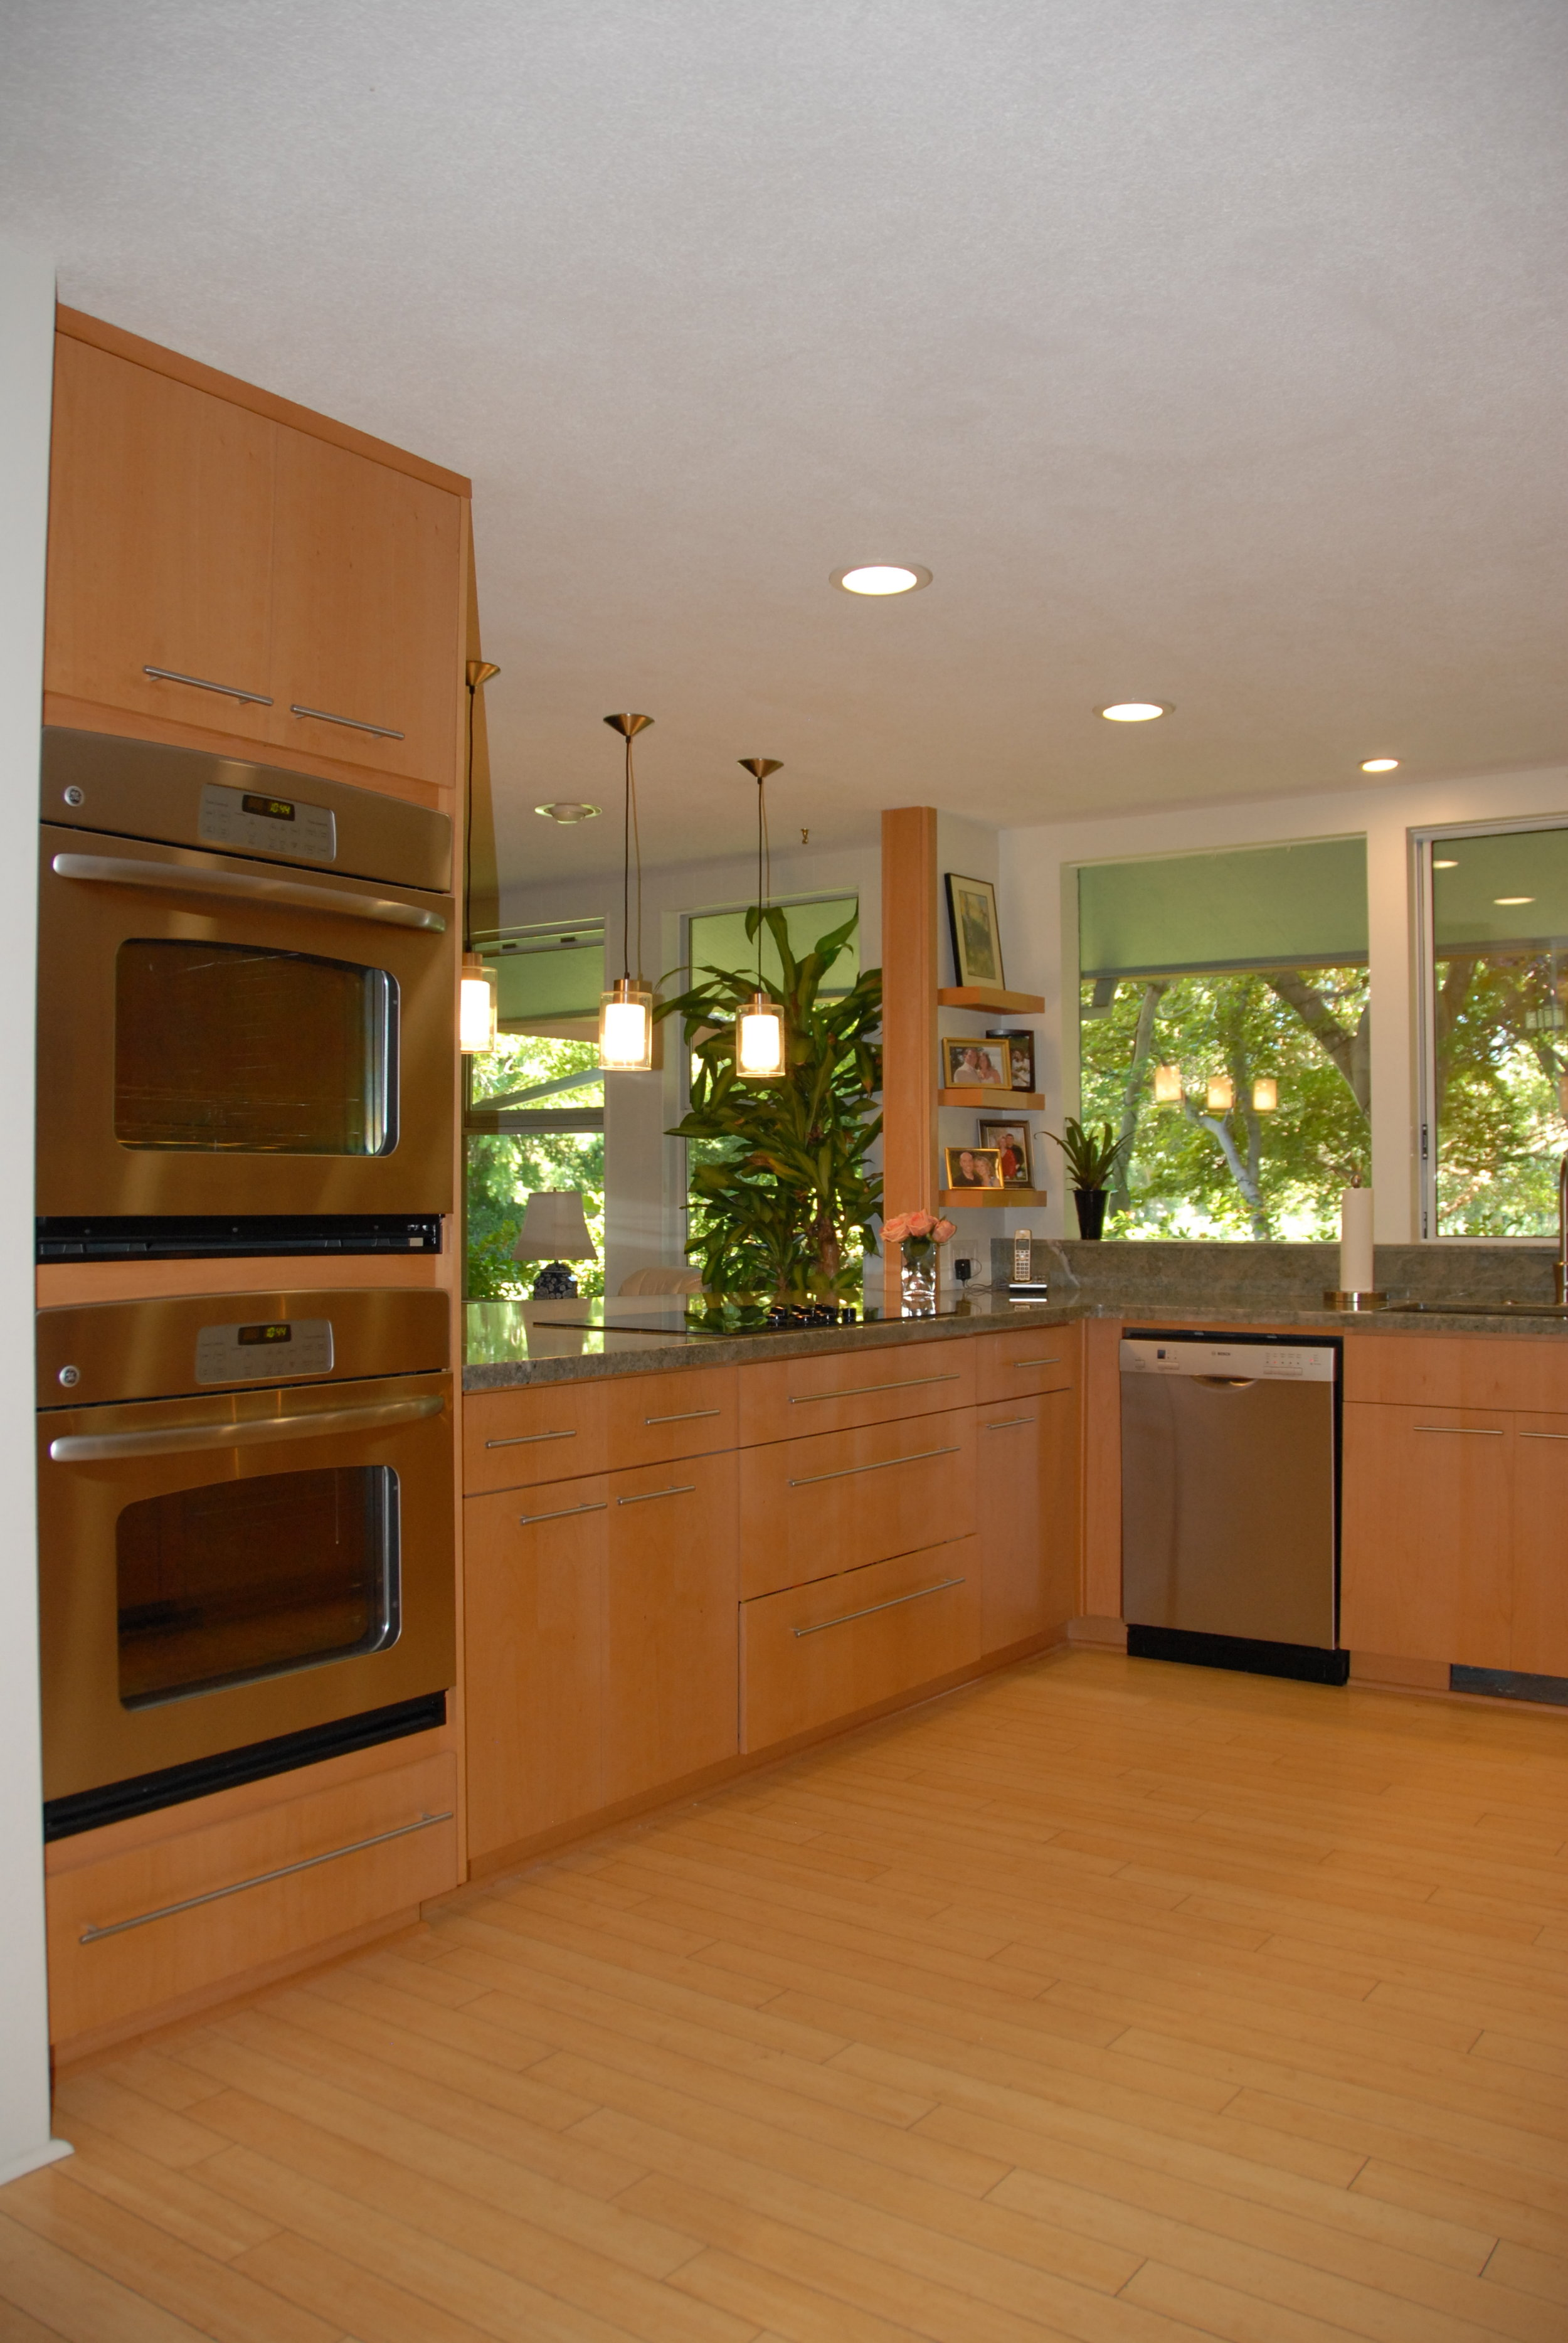 MId Century Kitchen Remodel Design with Stainless Steel Appliances in Chico, CA